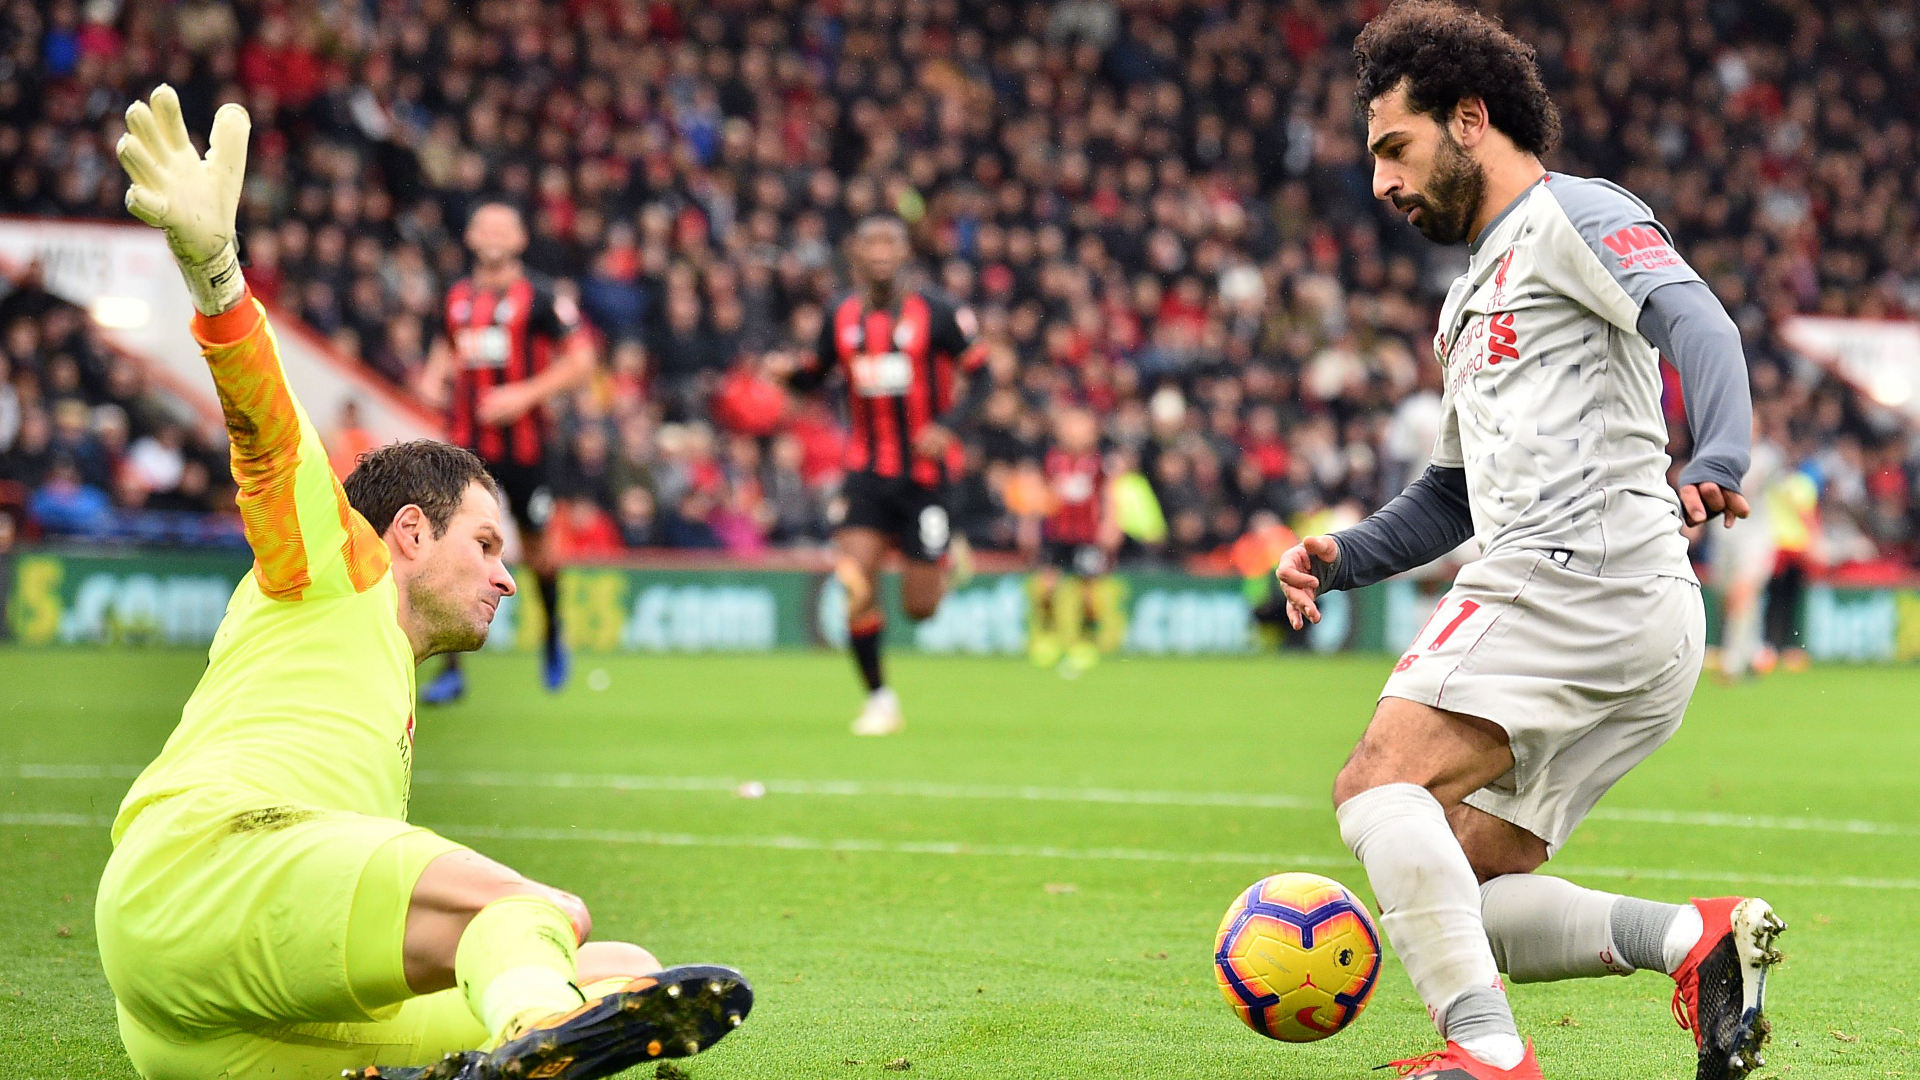 Salah hat trick puts Liverpool top with win at Bournemouth